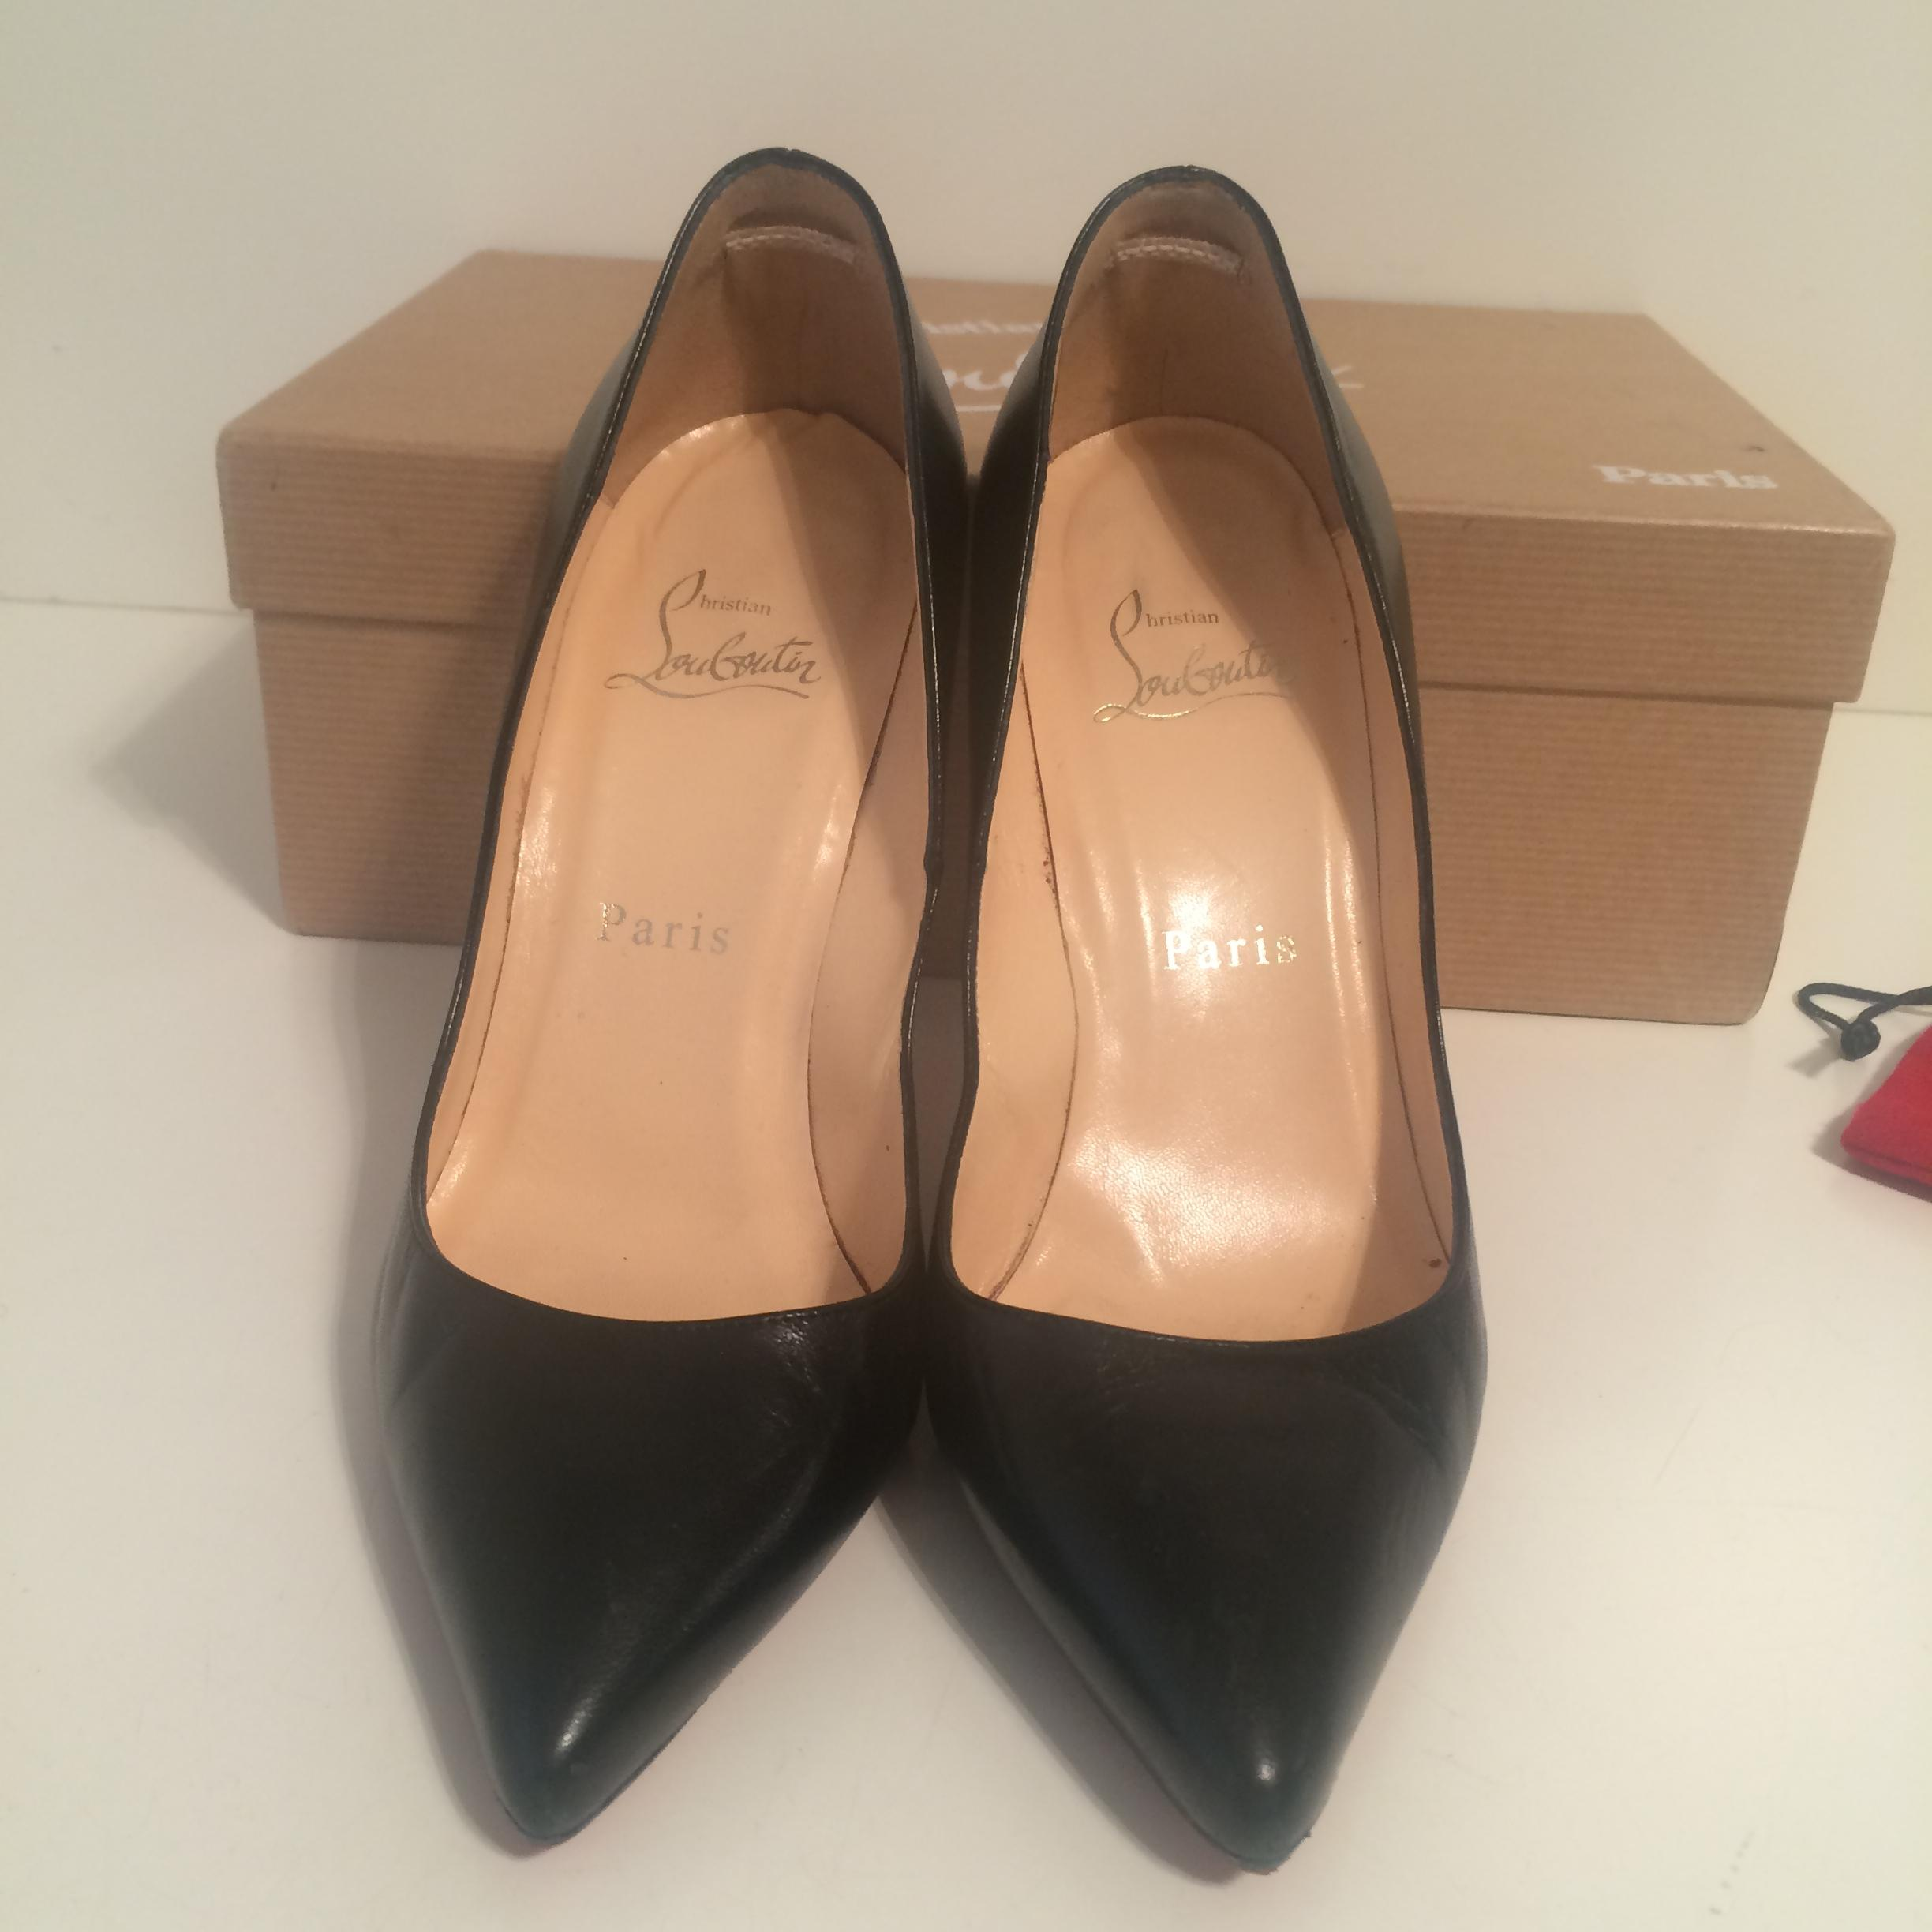 6fcf4738b31 ... Christian Louboutin Black Pigalle 100 Leather Leather Leather Eu 36 - 6 Pumps  Size US 5.5 ...